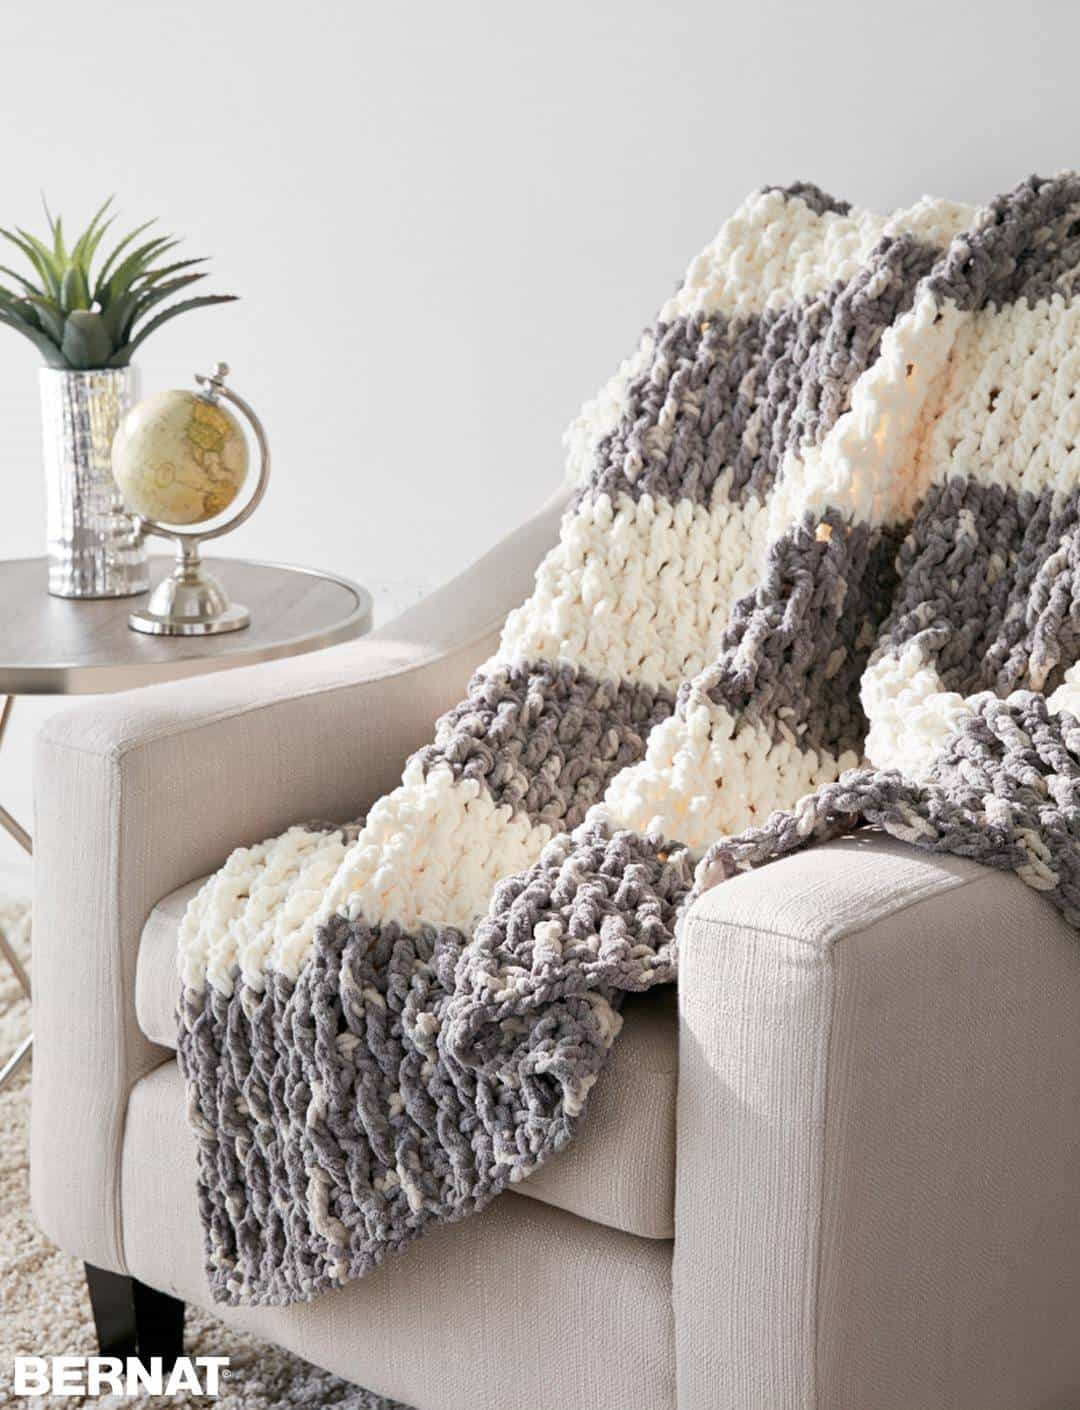 Bernat Blanket Yarn Patterns Beautiful 20 Awesome Crochet Blanket Patterns for Beginners Ideal Me Of New 42 Photos Bernat Blanket Yarn Patterns